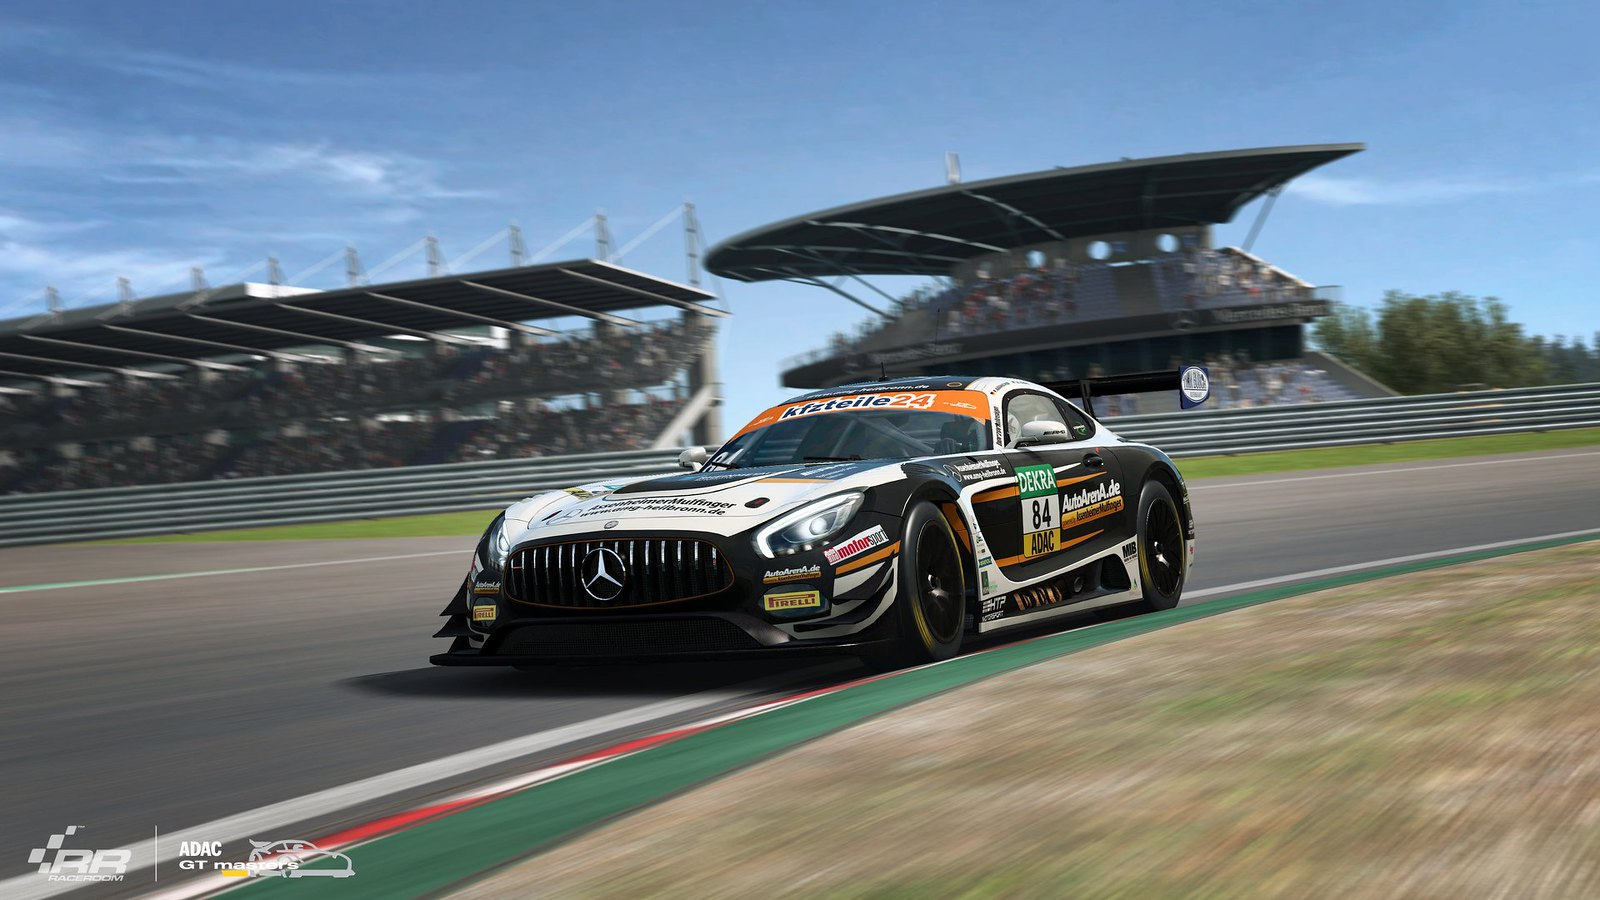 1 RaceRooom Mercedes-AMG teams of ADAC GT Masters 2018